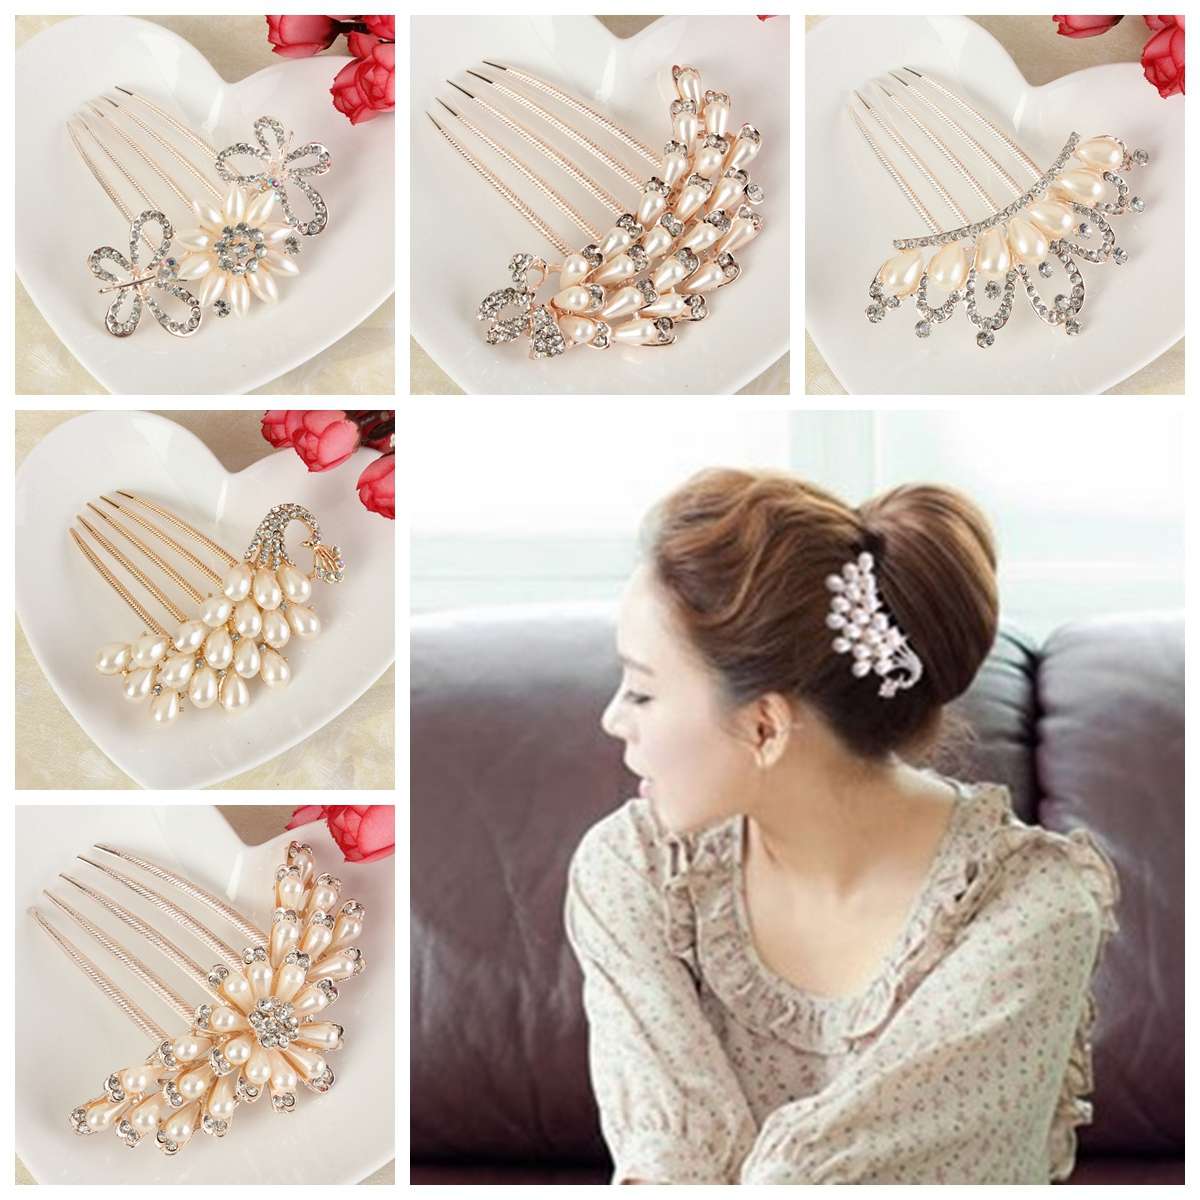 Wedding Hair Comb, Pearls Bridal Wedding Party Hair Comb Headdress Clip Pin Decor for Women